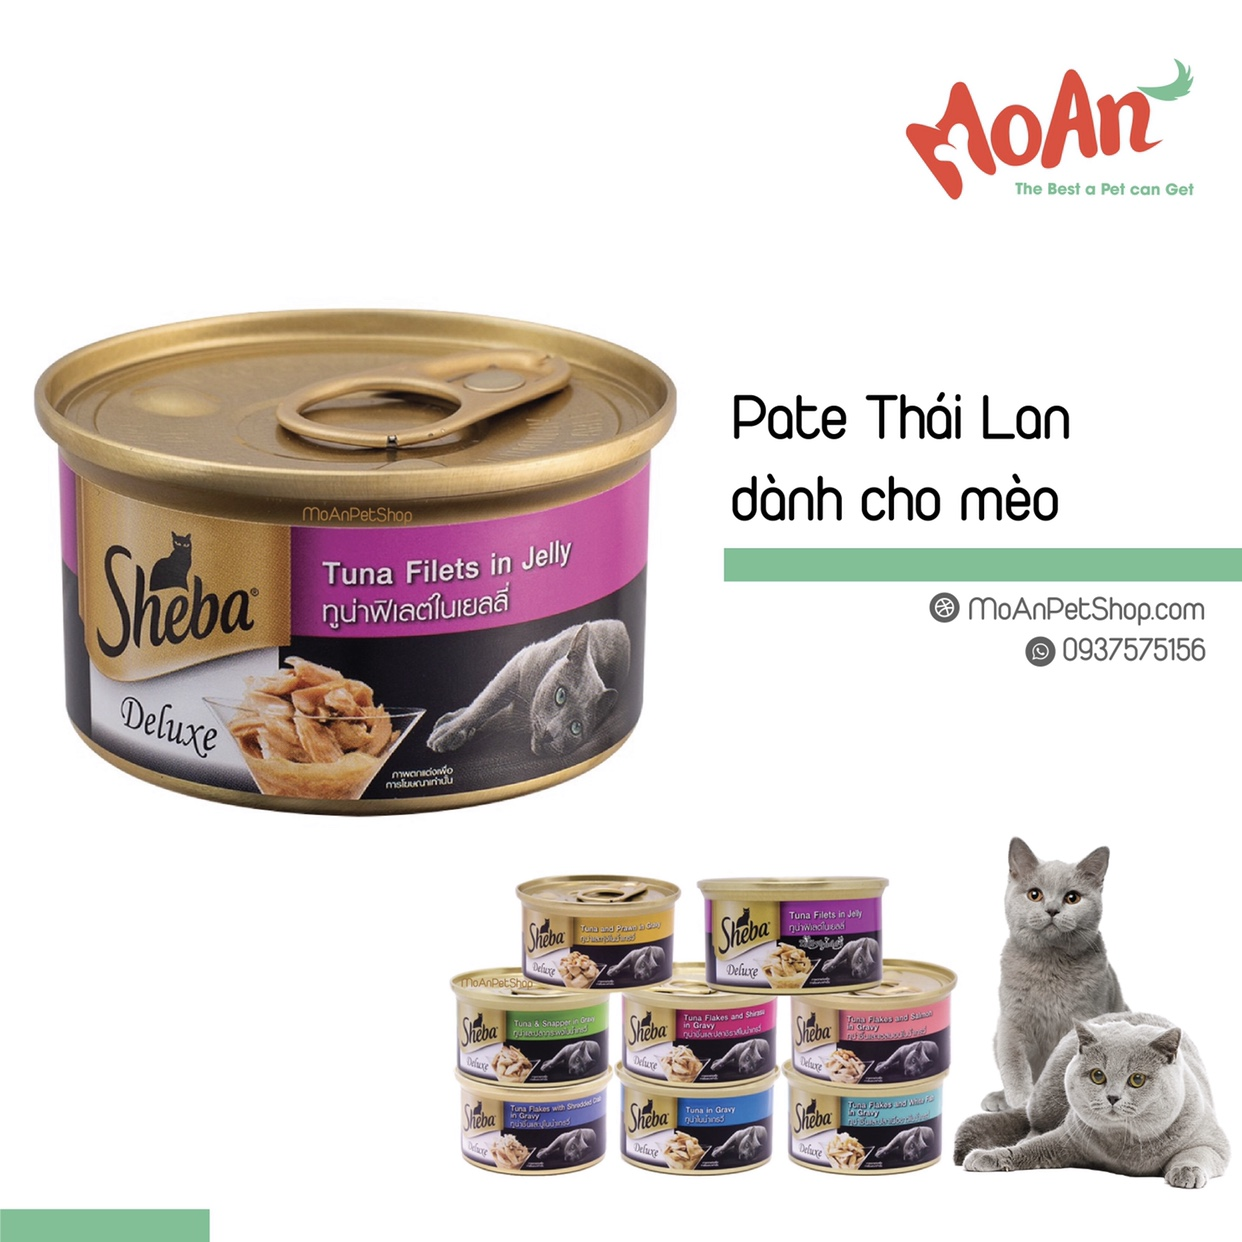 Pate Sheba Deluxe Thạch Filets Cá Ngừ Tuna in Jelly 85g